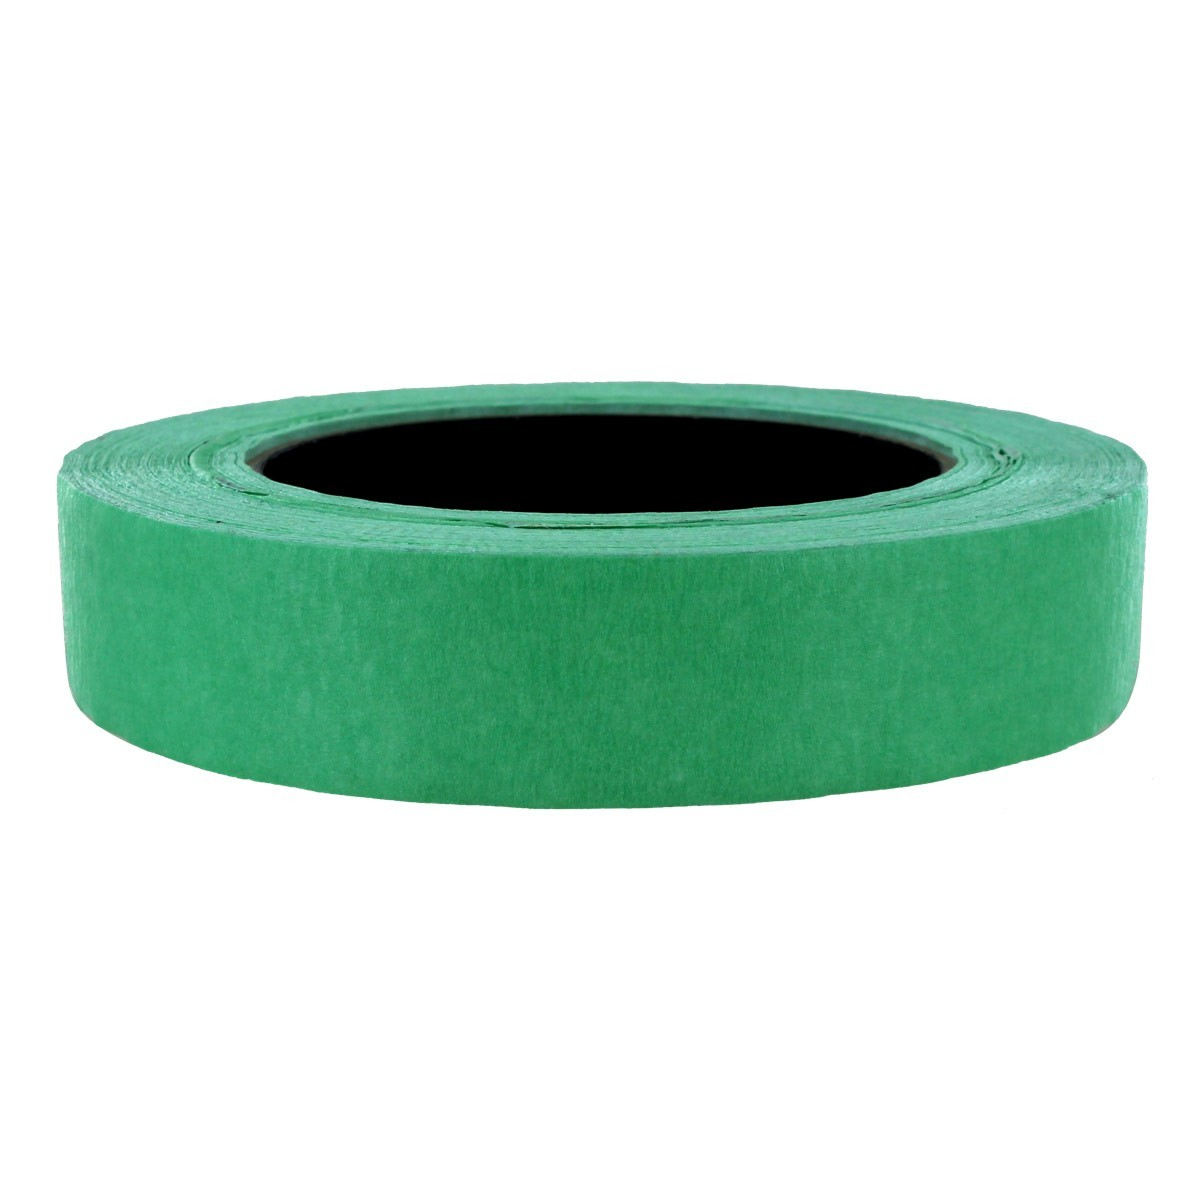 Masking Painters Tape, Green, 24 mm x 55 m, 3M 205, 48/cs